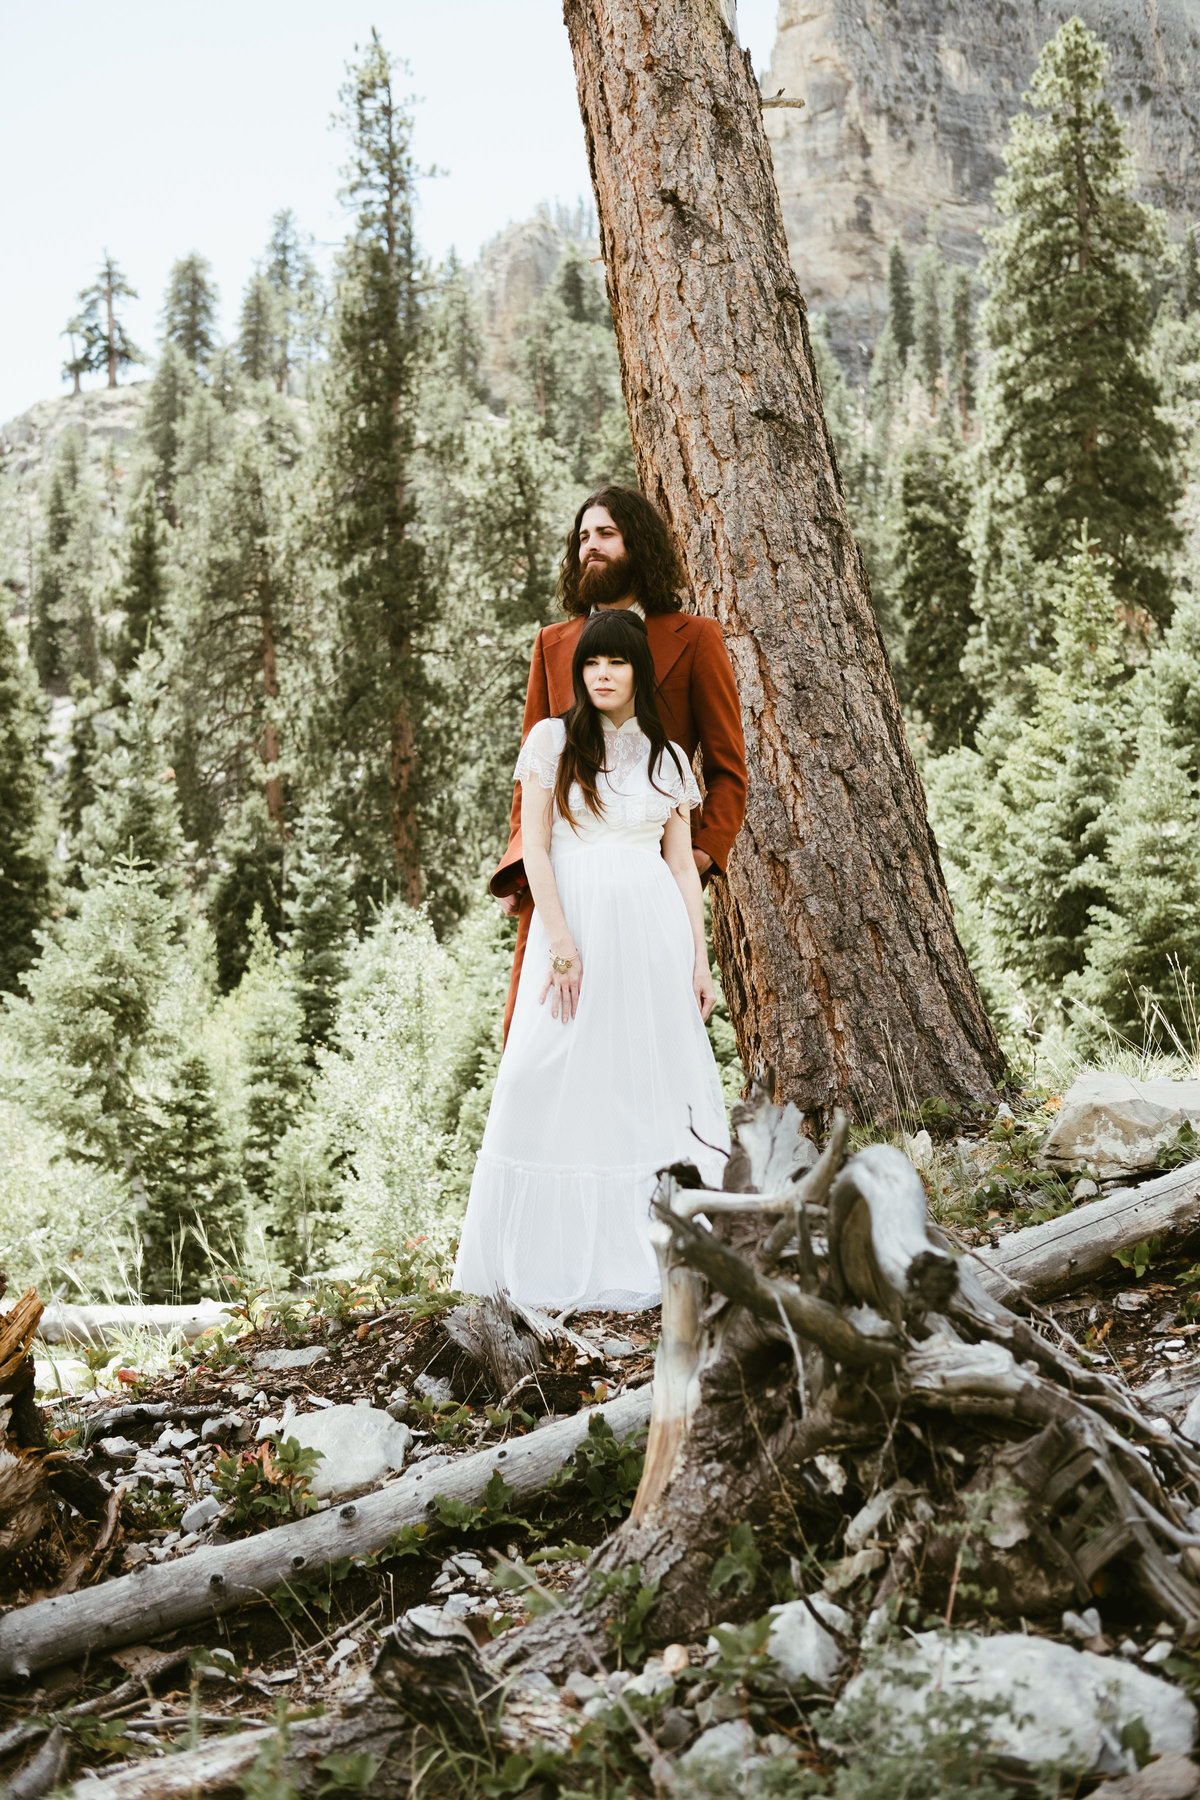 Mt.-Charleston-Engagement-Session-Best-Las-Vegas-Wedding-Photographer-3